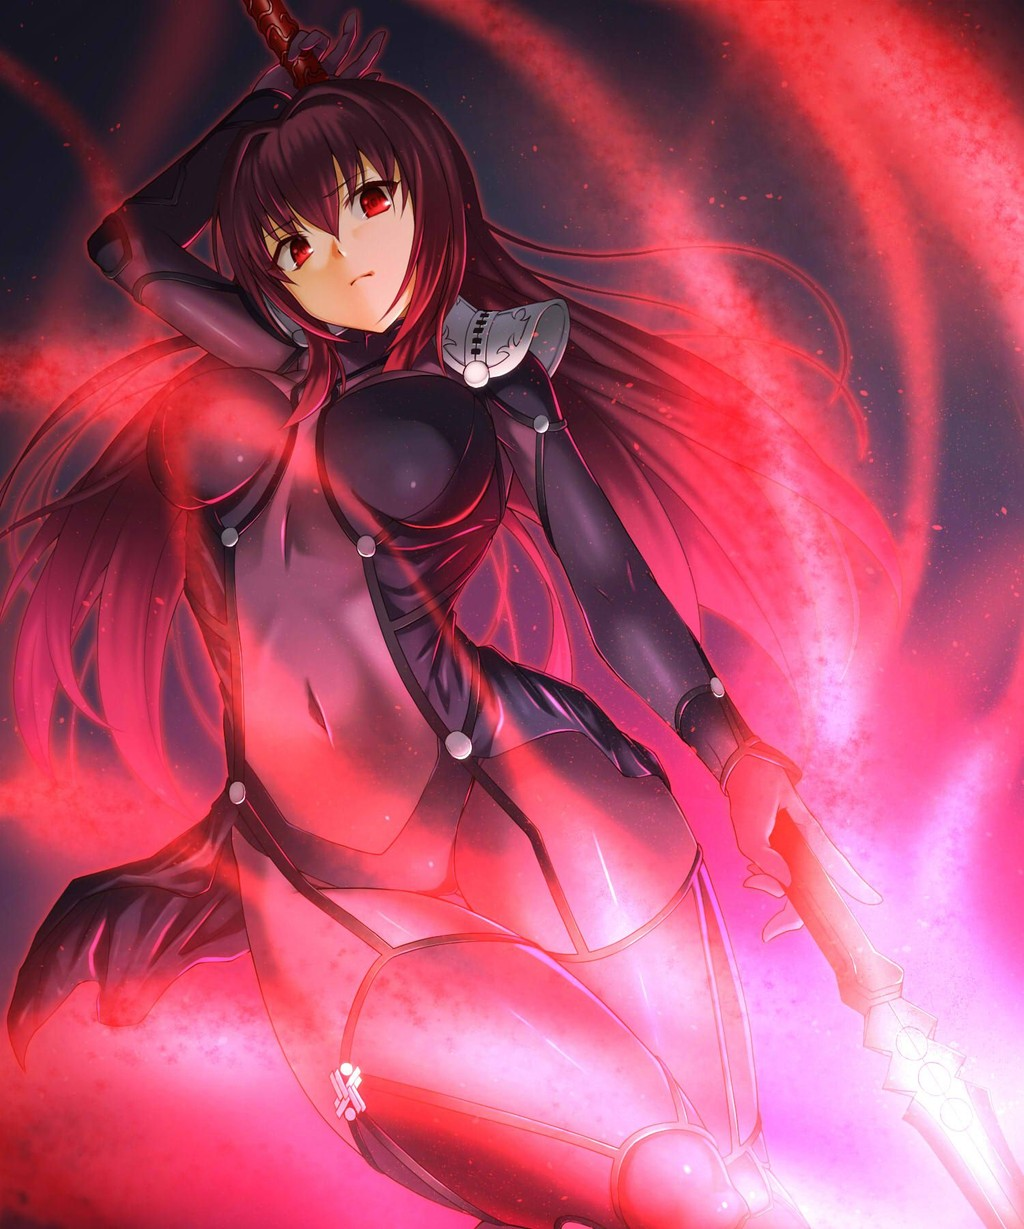 scathach_(fategrand_order)036